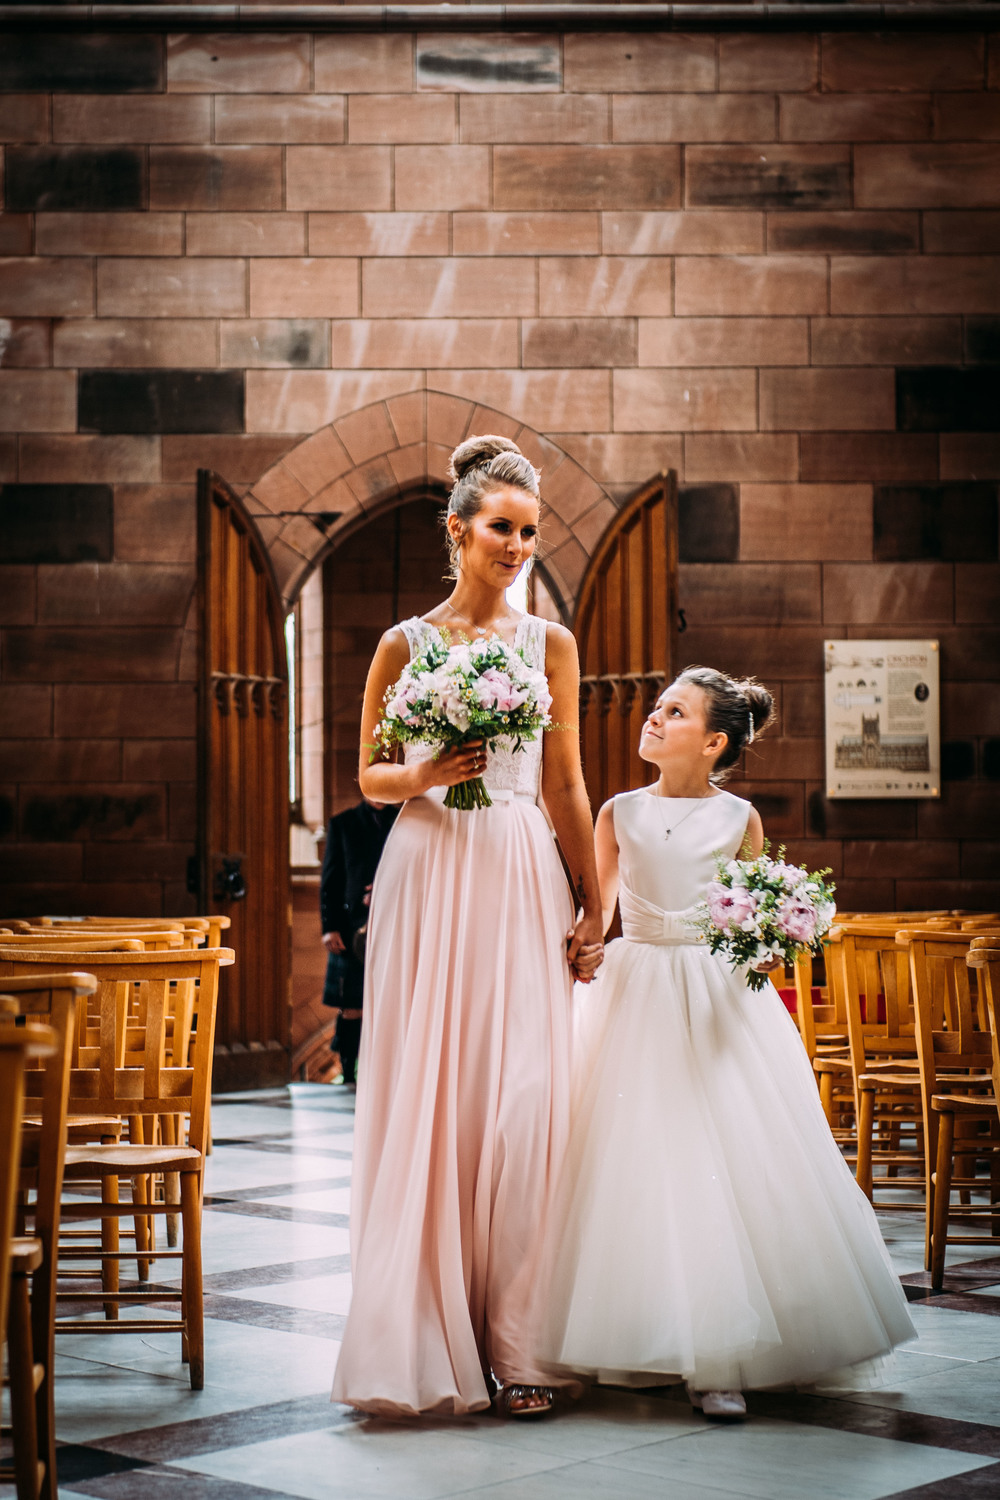 Dumfries-Wedding-Tom-Cairns-Photography-Easterbrook-Hall-Blush-Pink-Wedding-Details 23